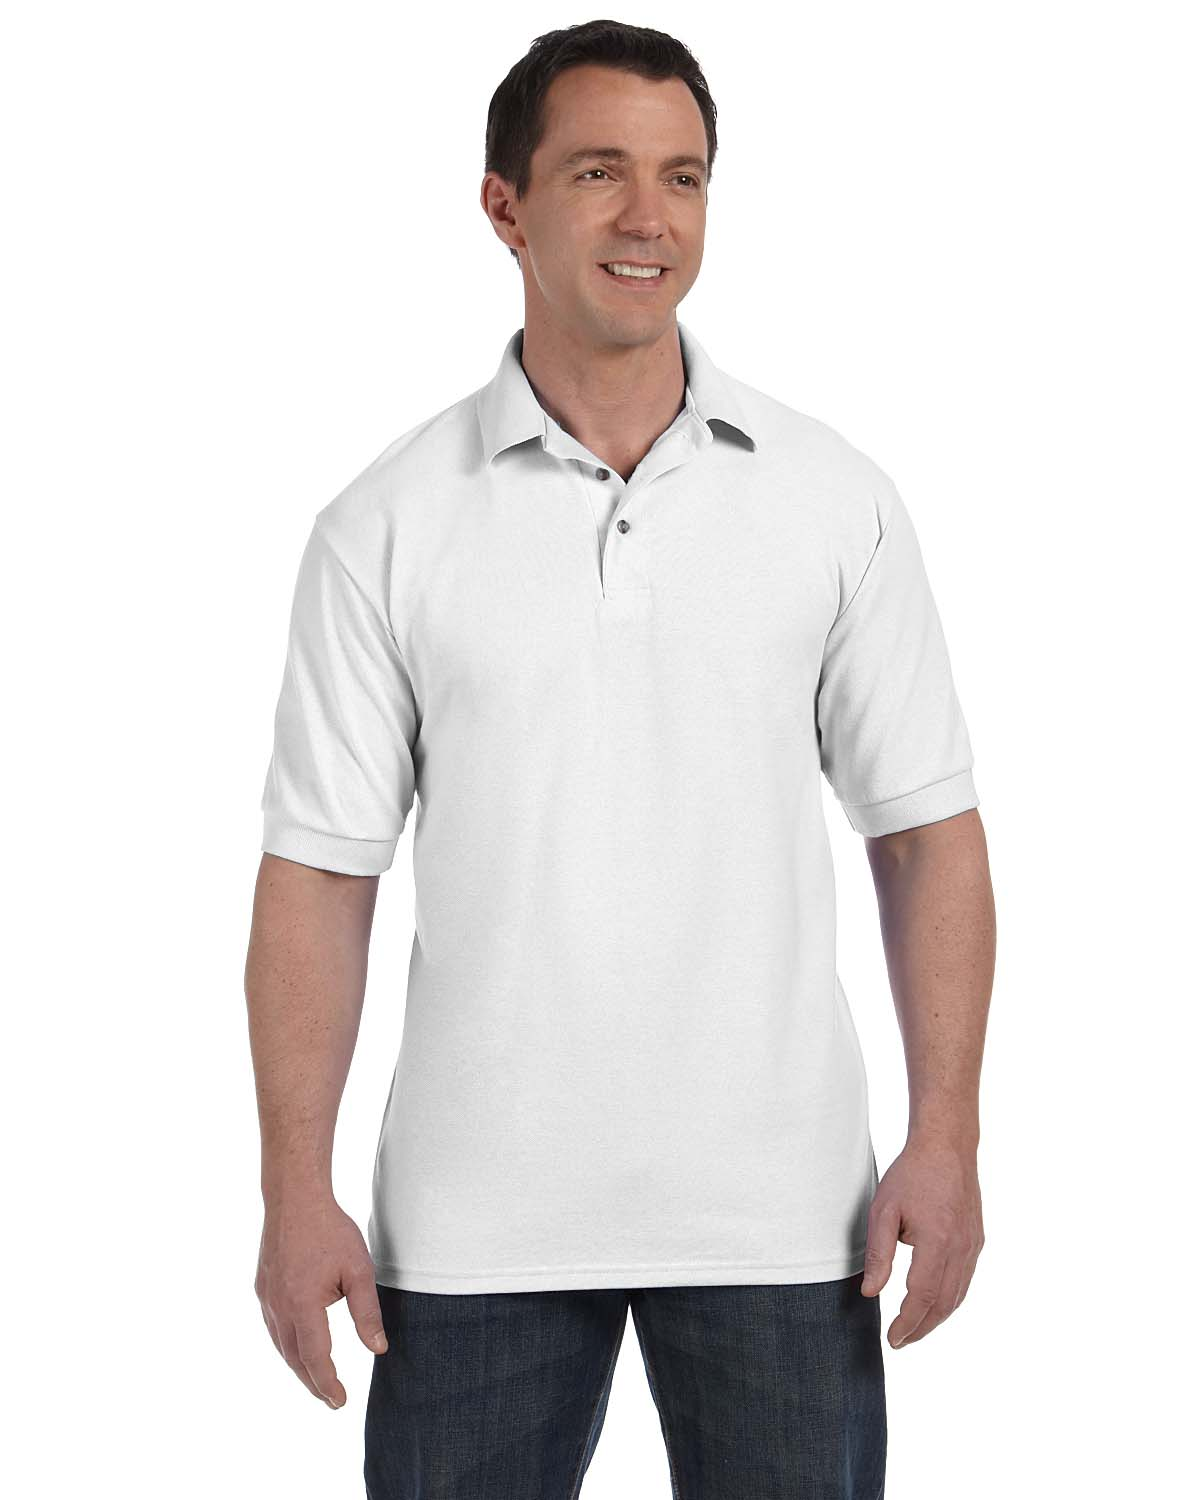 Hanes 055 Men 7 oz. ComfortSoft Cotton Pique Polo White at GotApparel